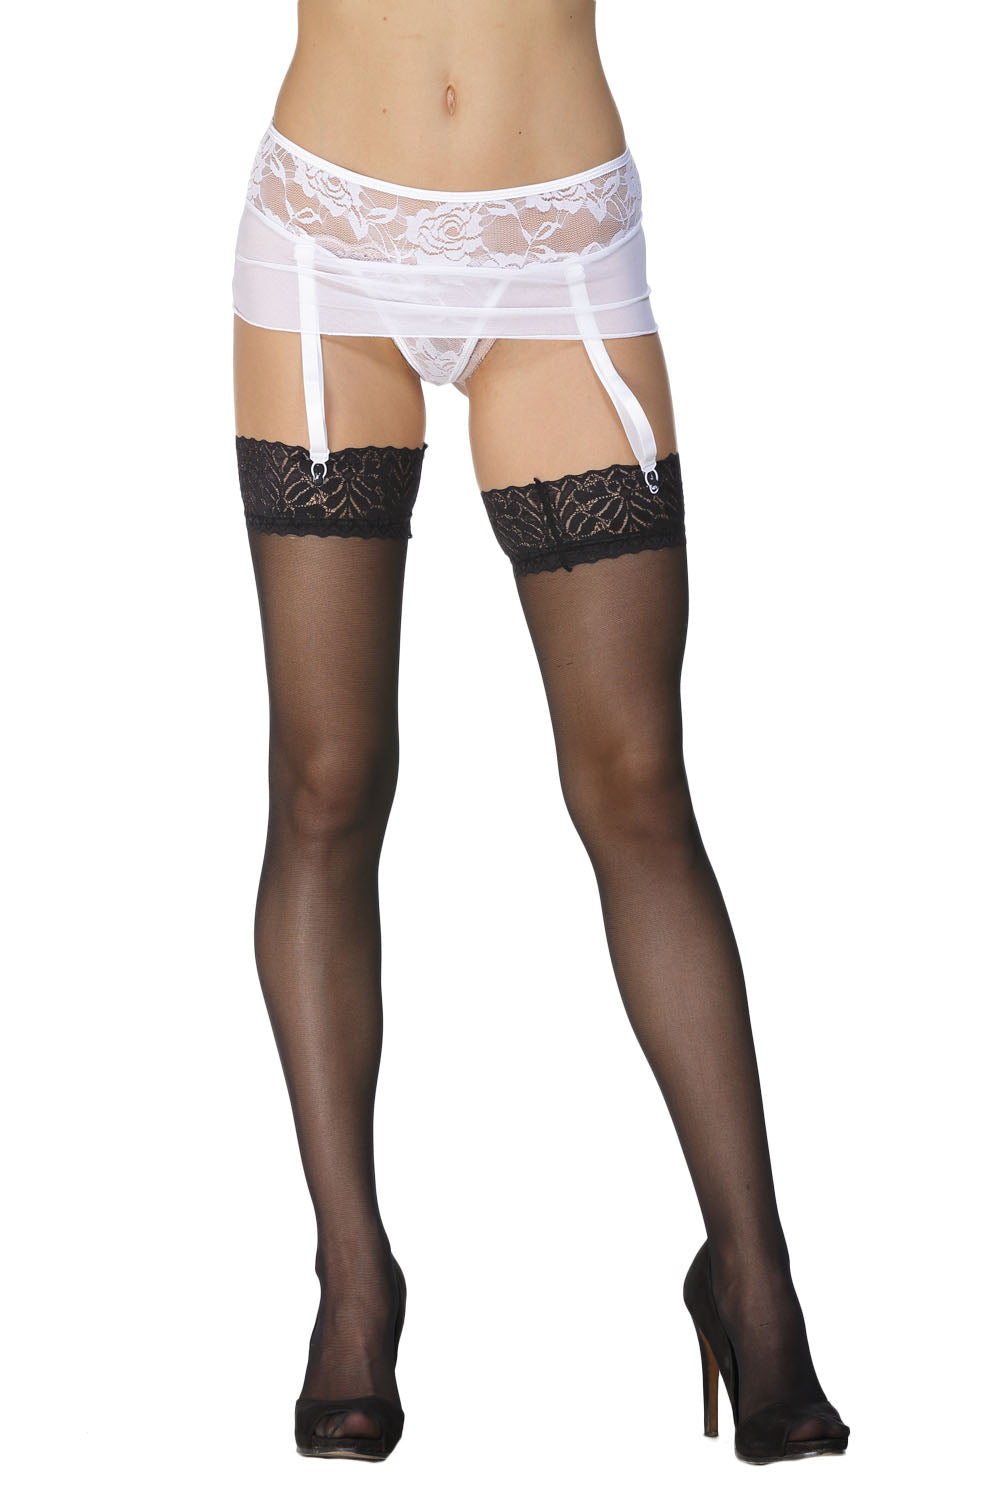 White Lace Mesh Garters With G-String